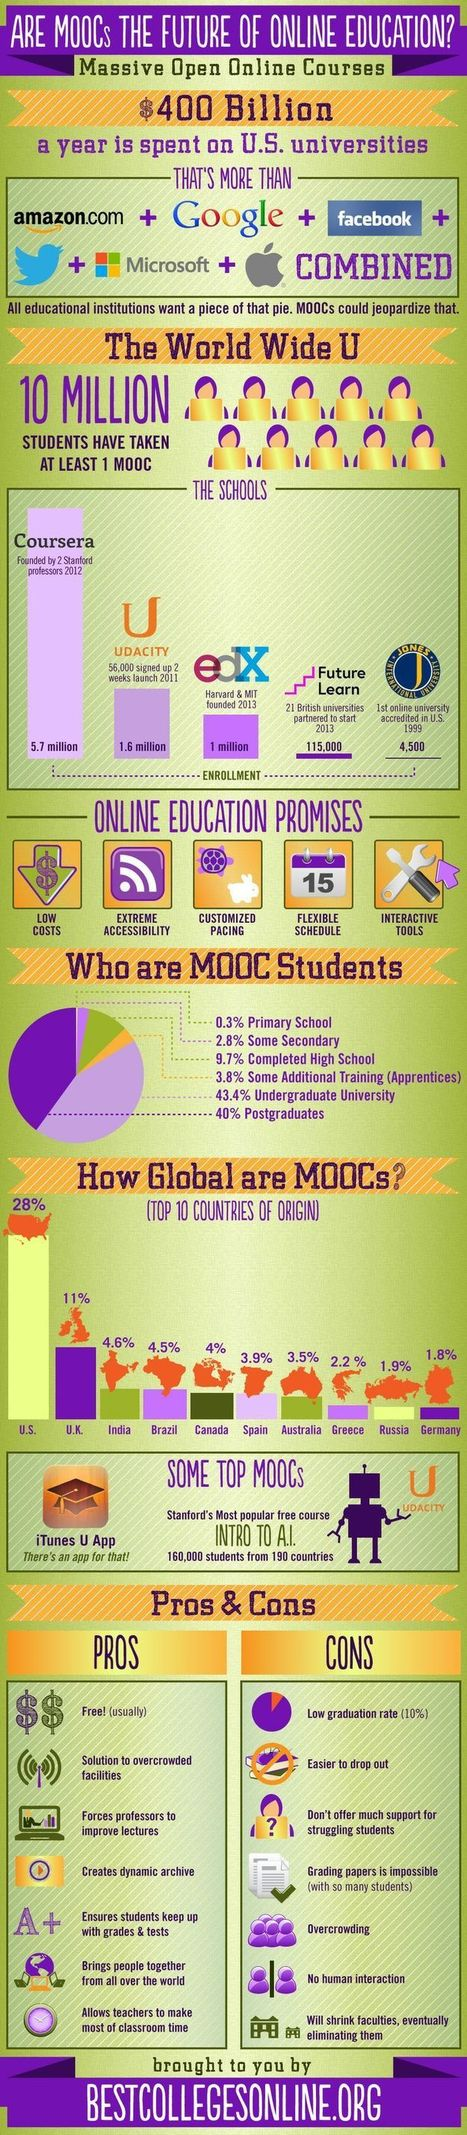 10 Million Students Have Taken A MOOC. Does The Model Work? - Online Learning Guide | Mooc's METID | Scoop.it